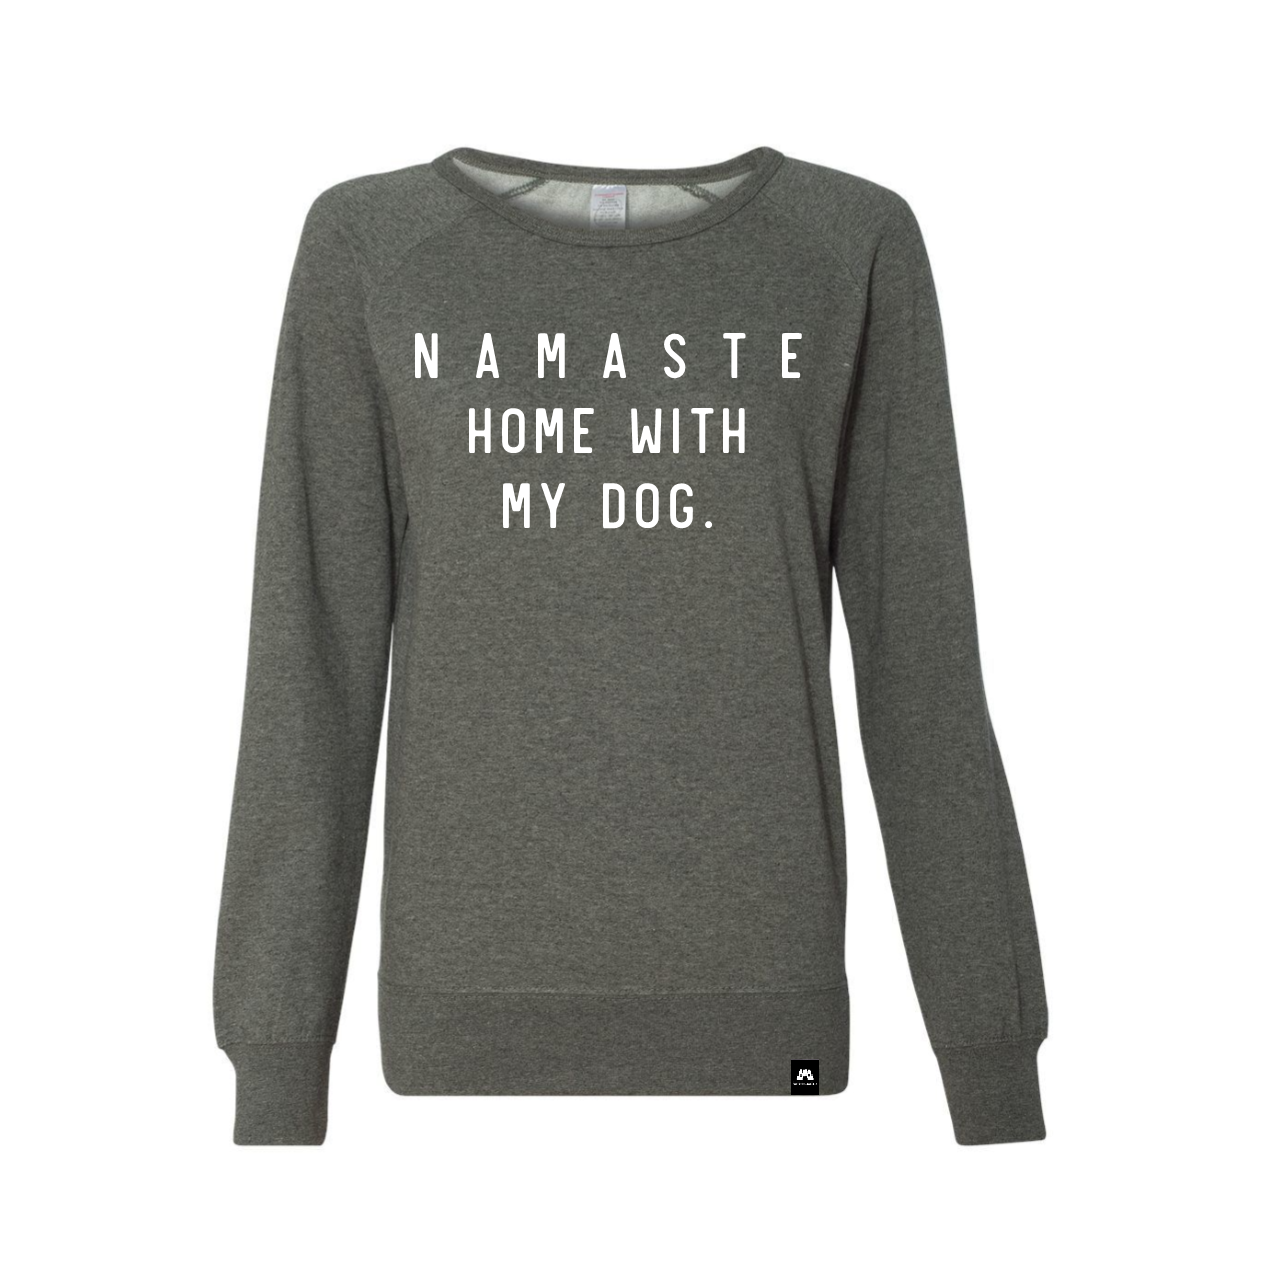 Namaste Home With My Dog Crew Neck - Grey